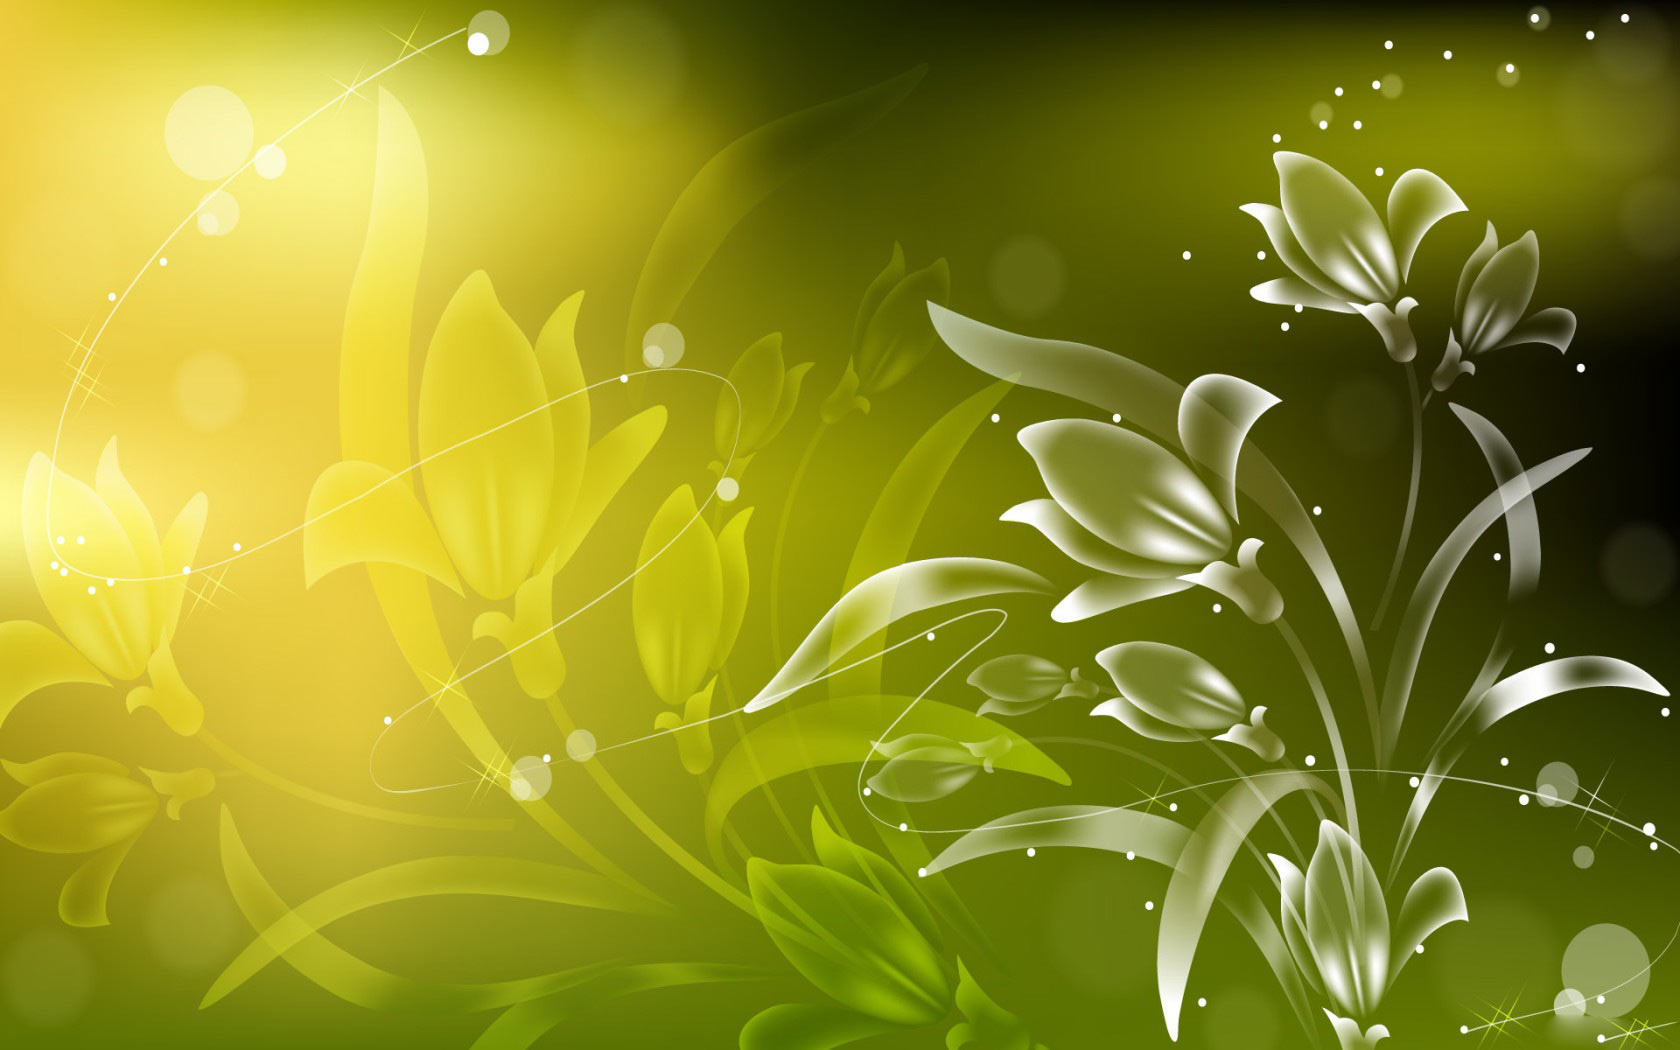 Light Green Abstract Background Vector Images 1680x1050